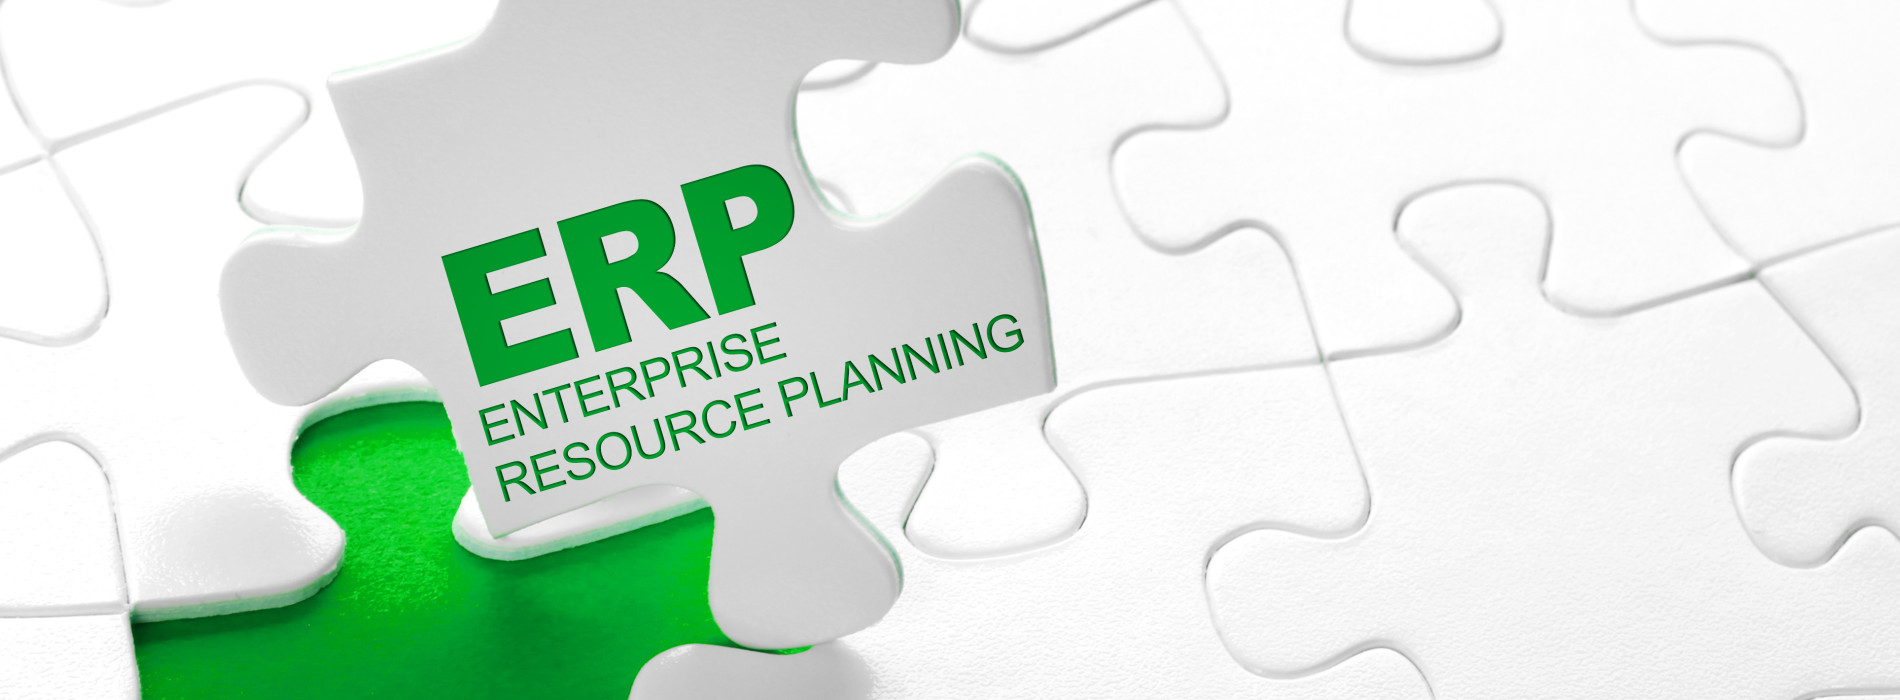 latest research papers on erp